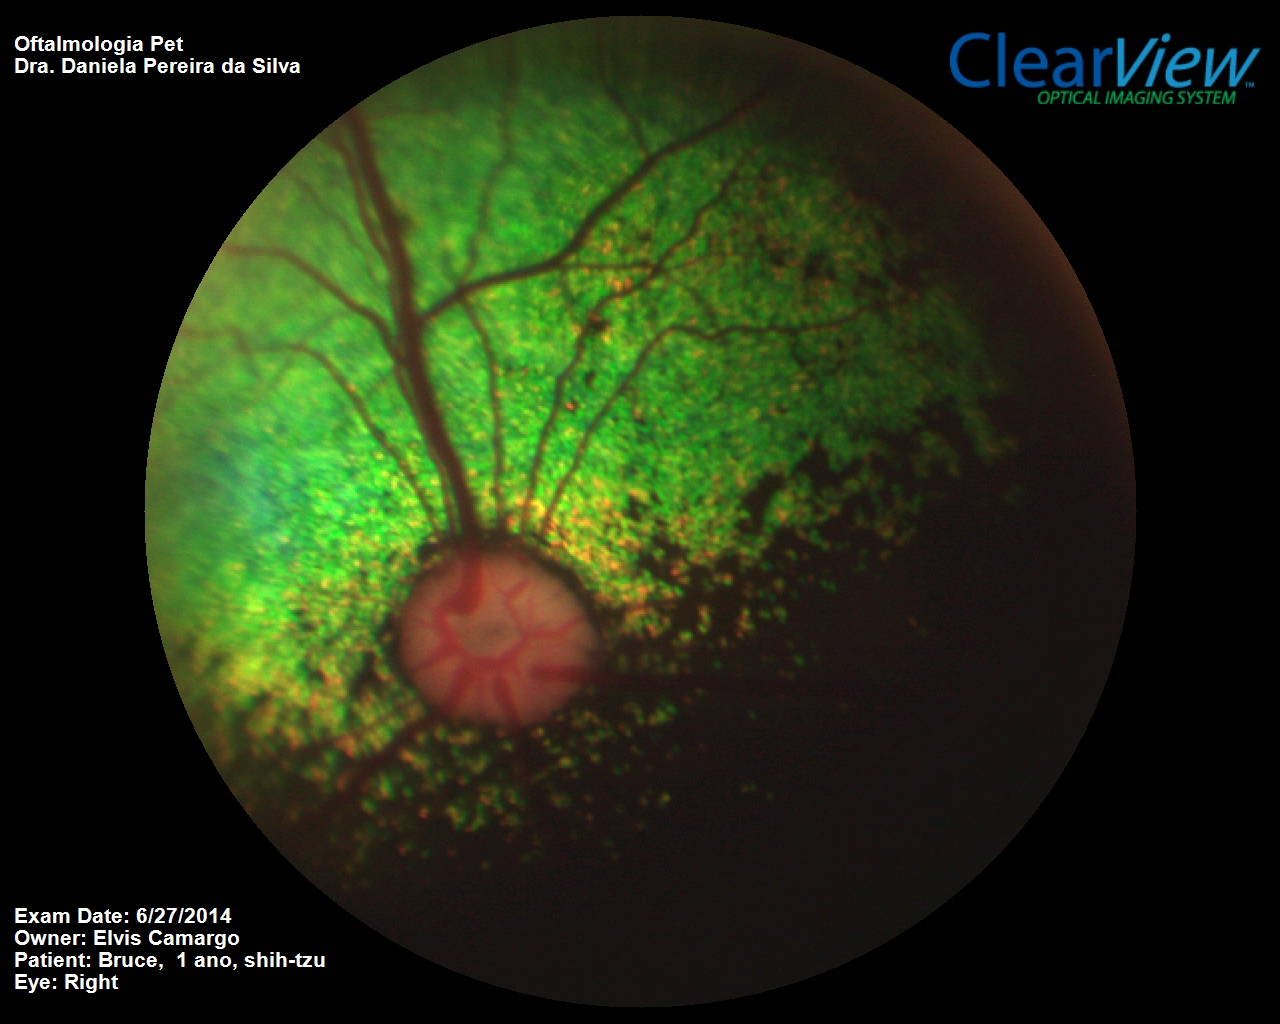 Investigation of fellow eye of unilateral retinal detachment in Shih-Tzu